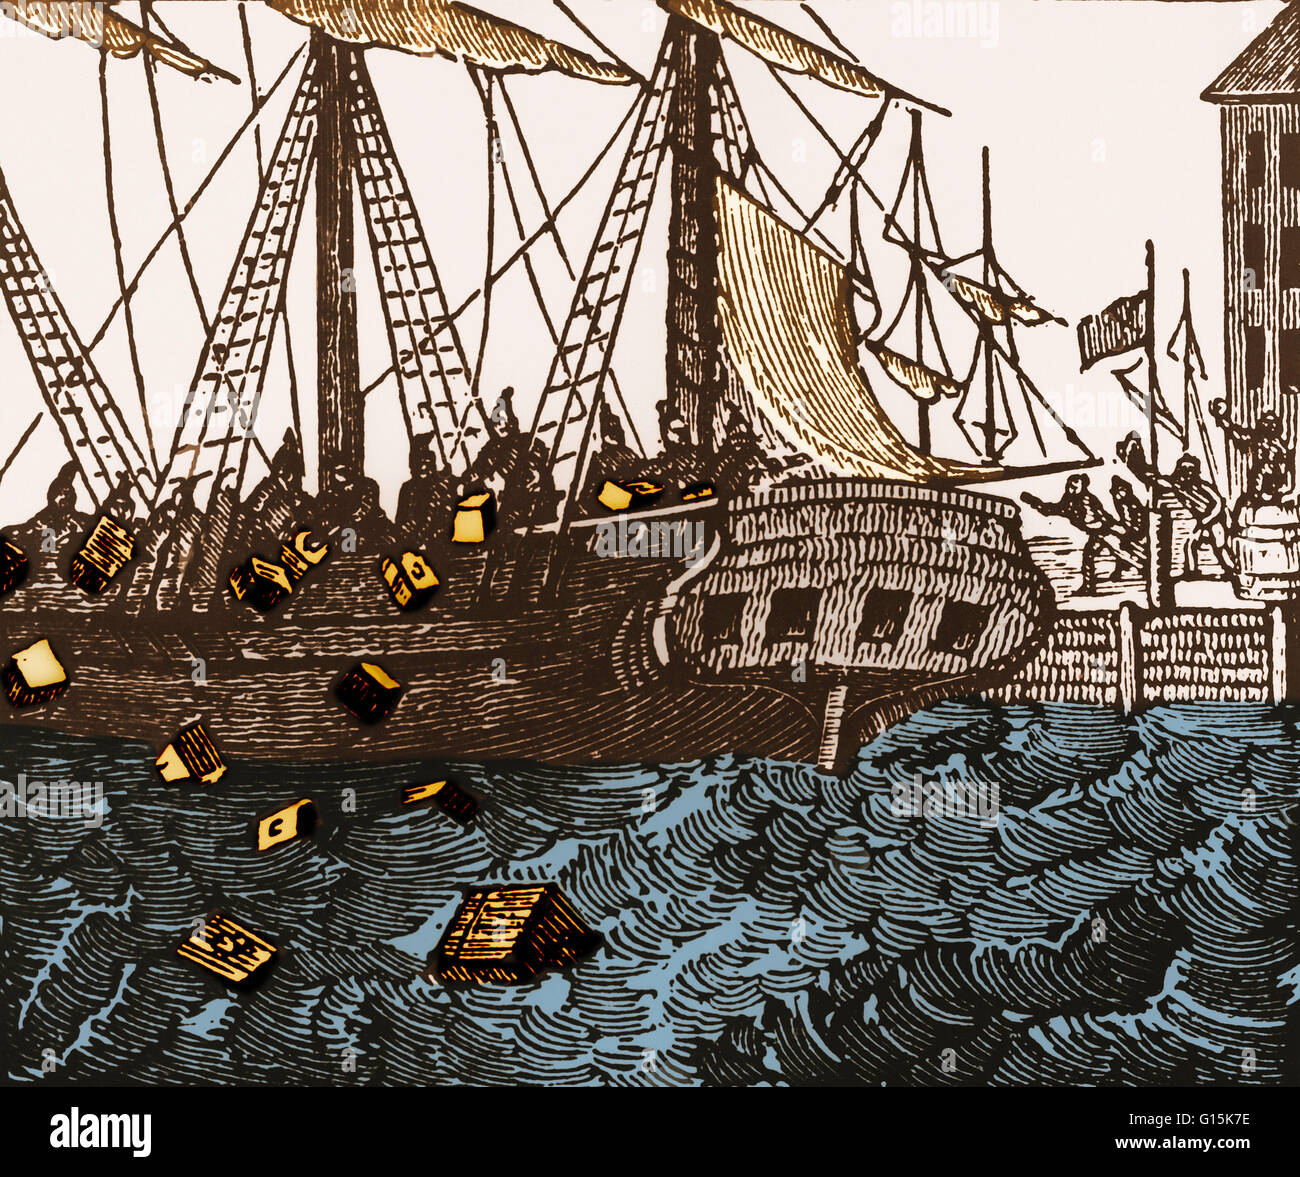 """account of the boston tea party This week in class, we're reading a participant's first-hand account of the boston tea party by george hewes in """"a participant's first-hand account of the boston tea party,"""" george hewes explains what led to the famous event, and a first-hand account of what happened."""